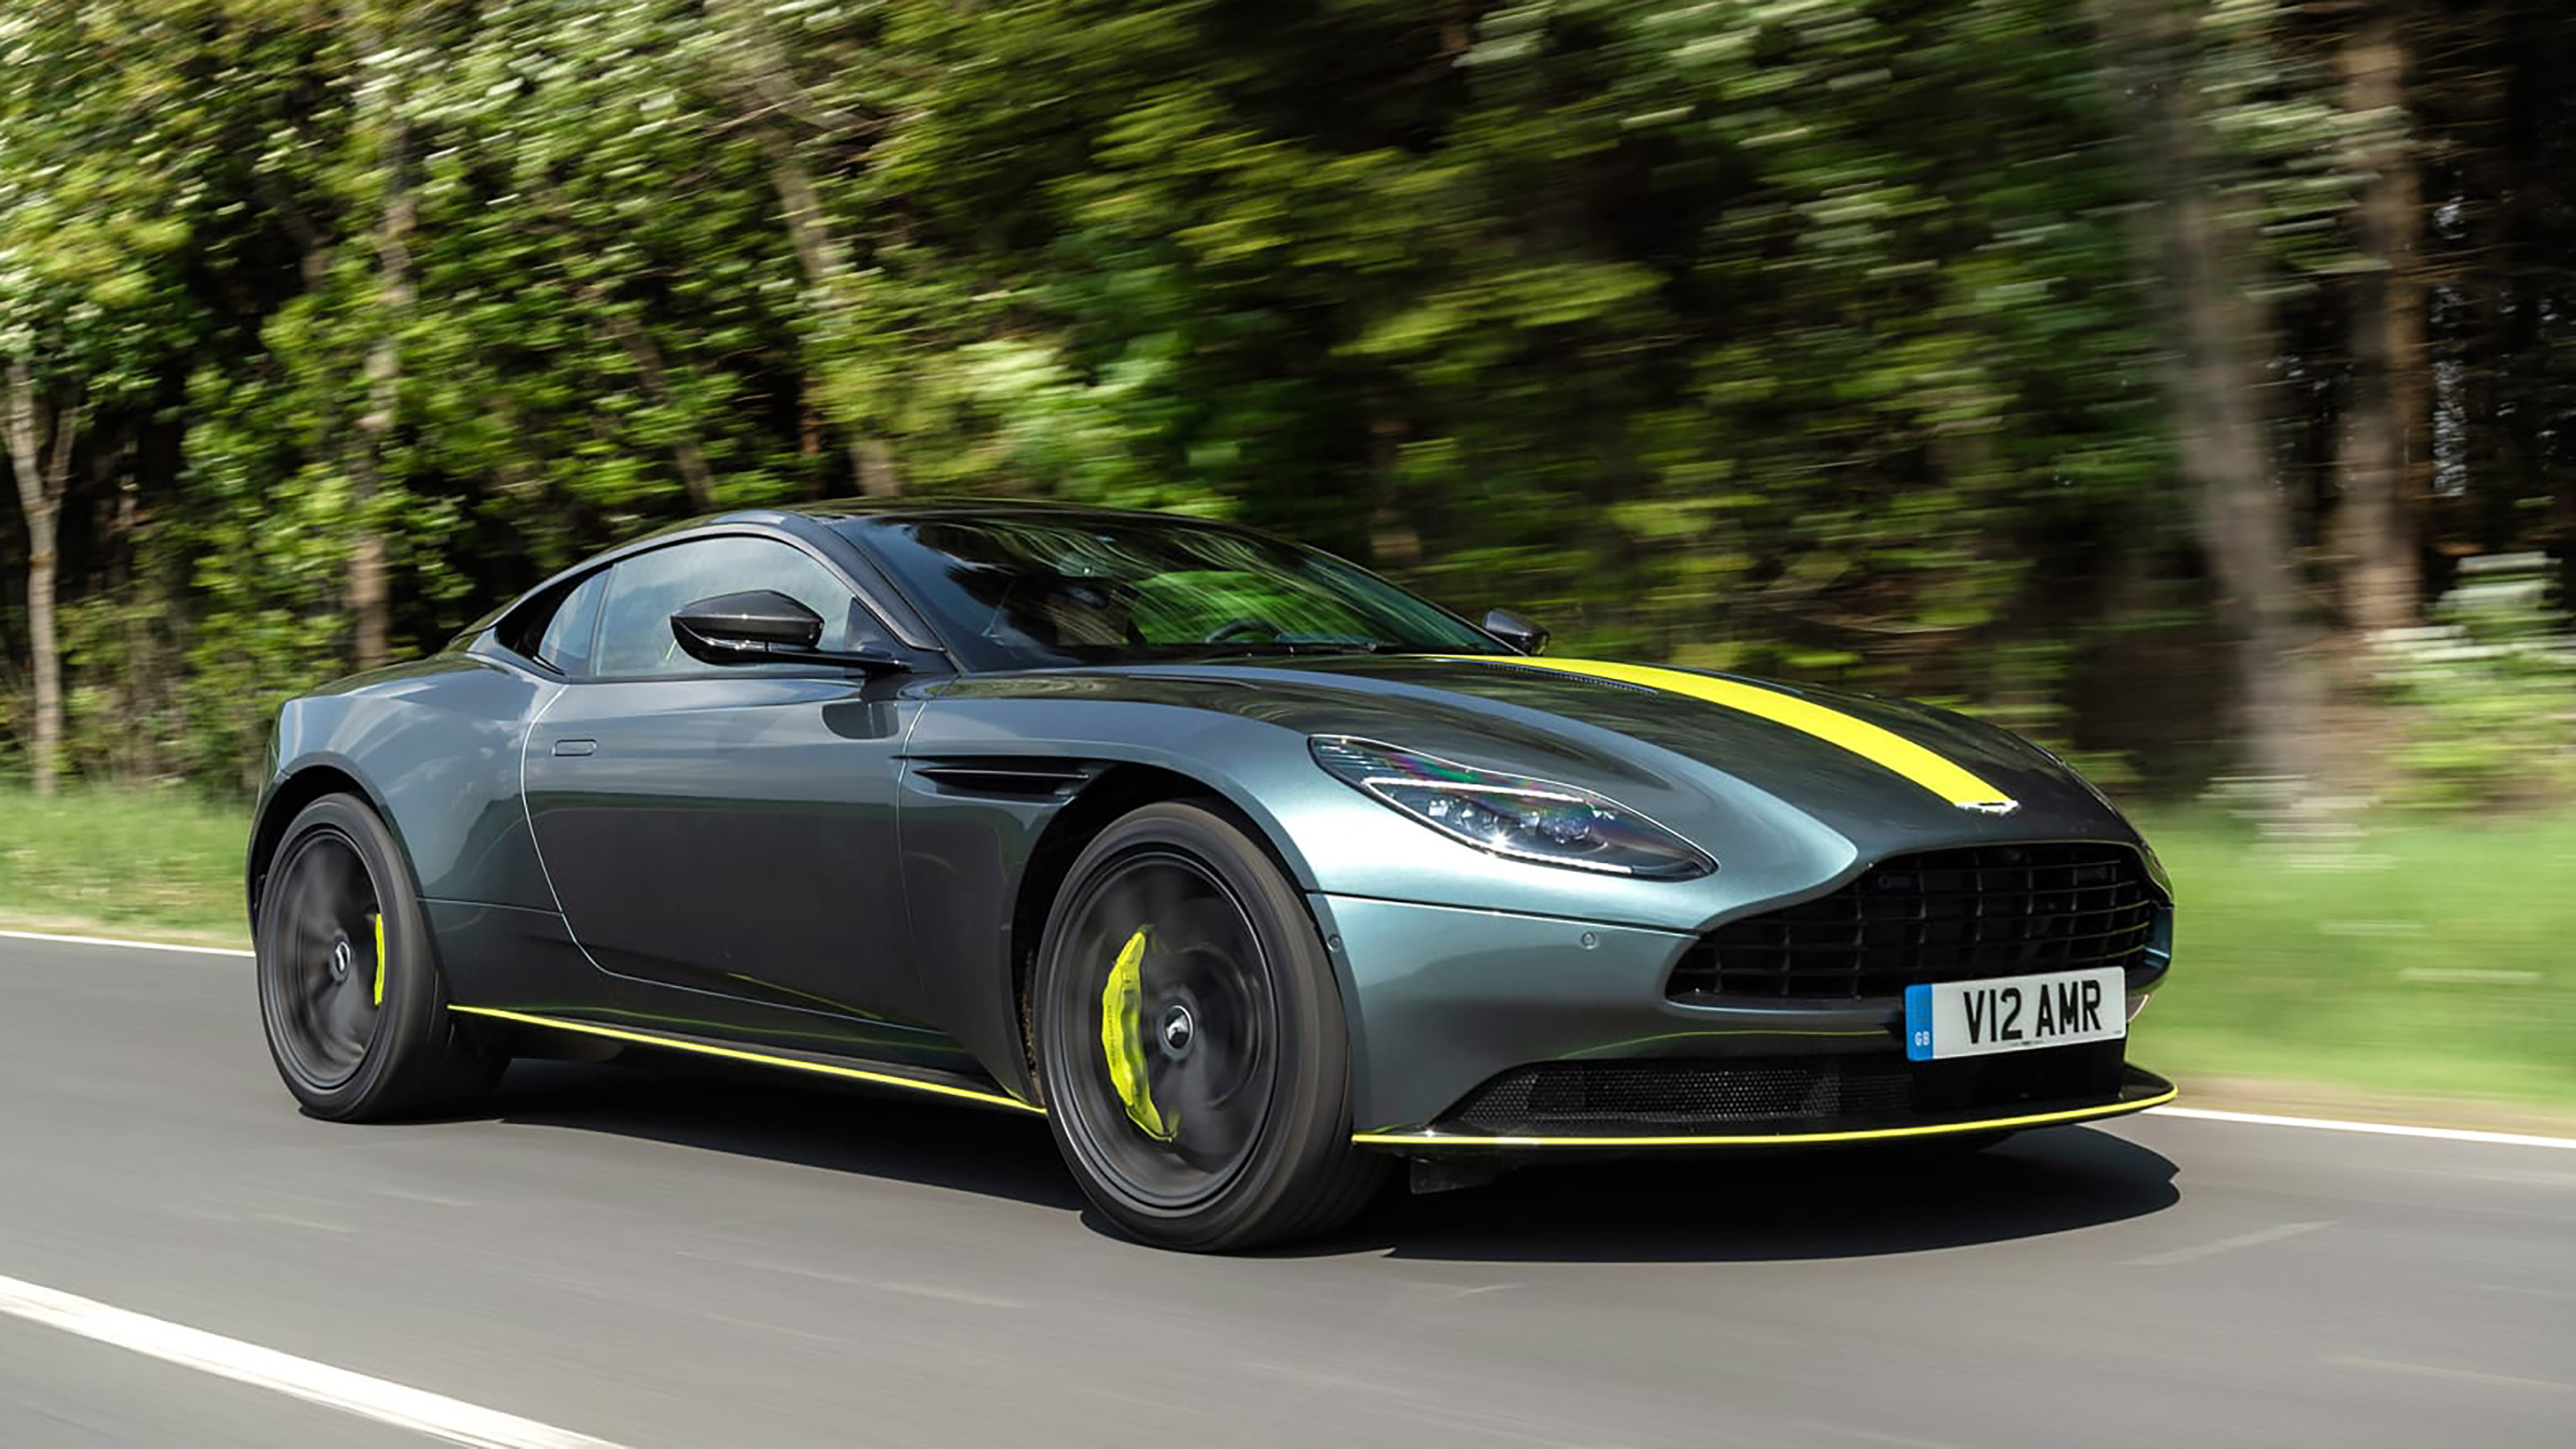 2020 Aston Martin Db11 Amr Review A Better Car But Is It A Better Db11 Evo